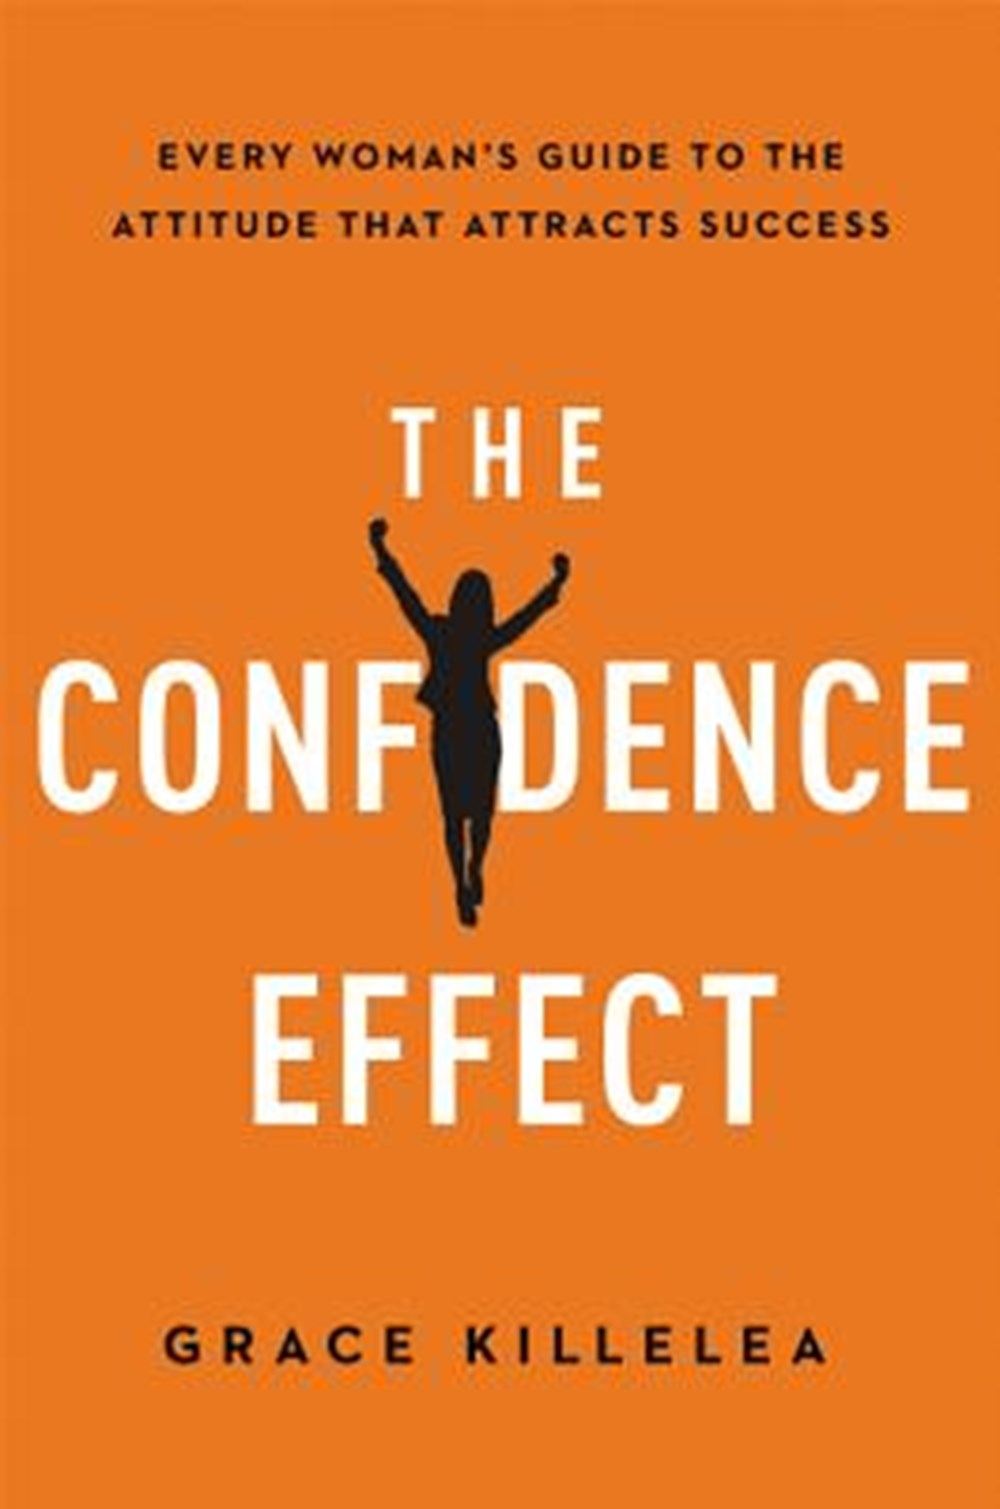 Confidence Effect Every Woman's Guide to the Attitude That Attracts Success